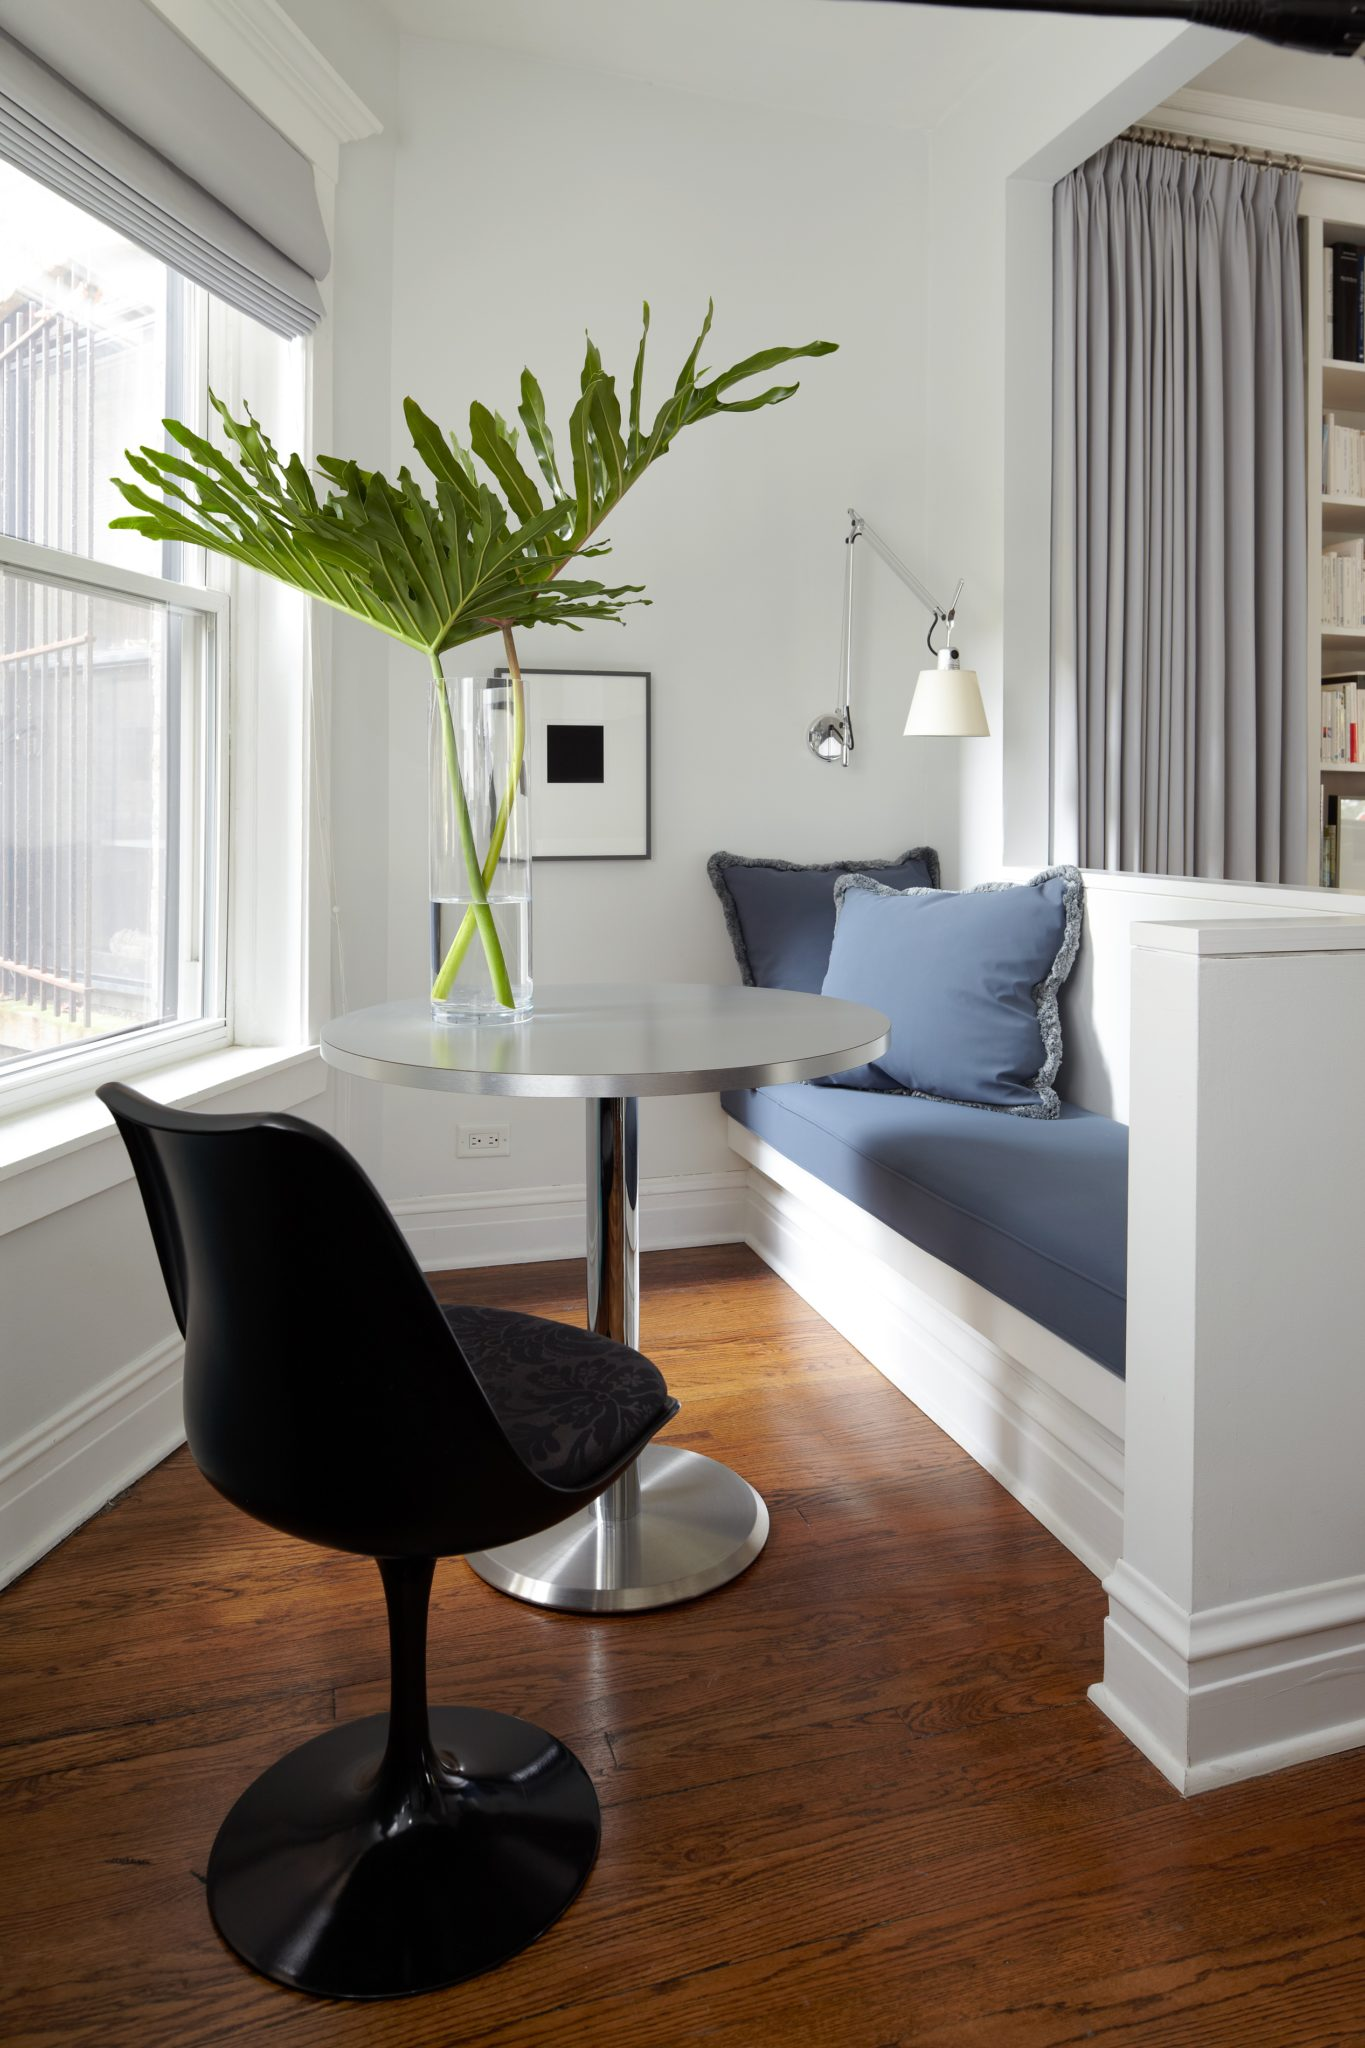 """Everything is designed at 36"""" high, including the art rail, the backs of the furniture, and the wall of the breakfast area, with the aim of creating a calming """"horizon"""" in the space."""